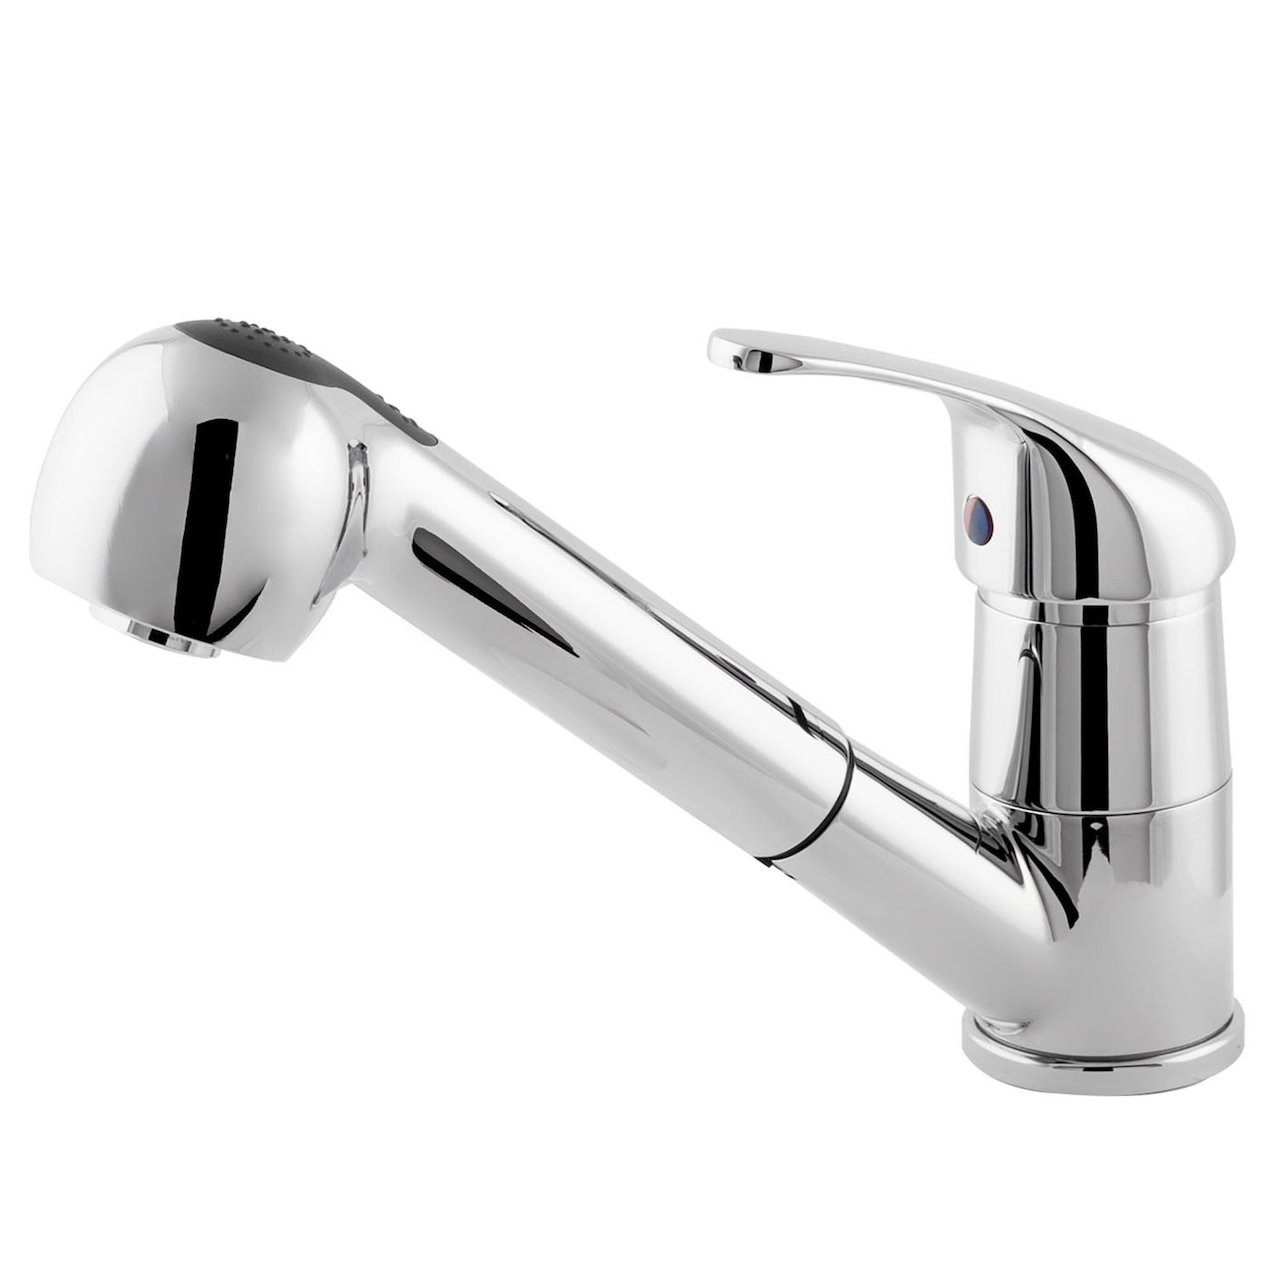 Single level kitchen mixer with a extractable-spout